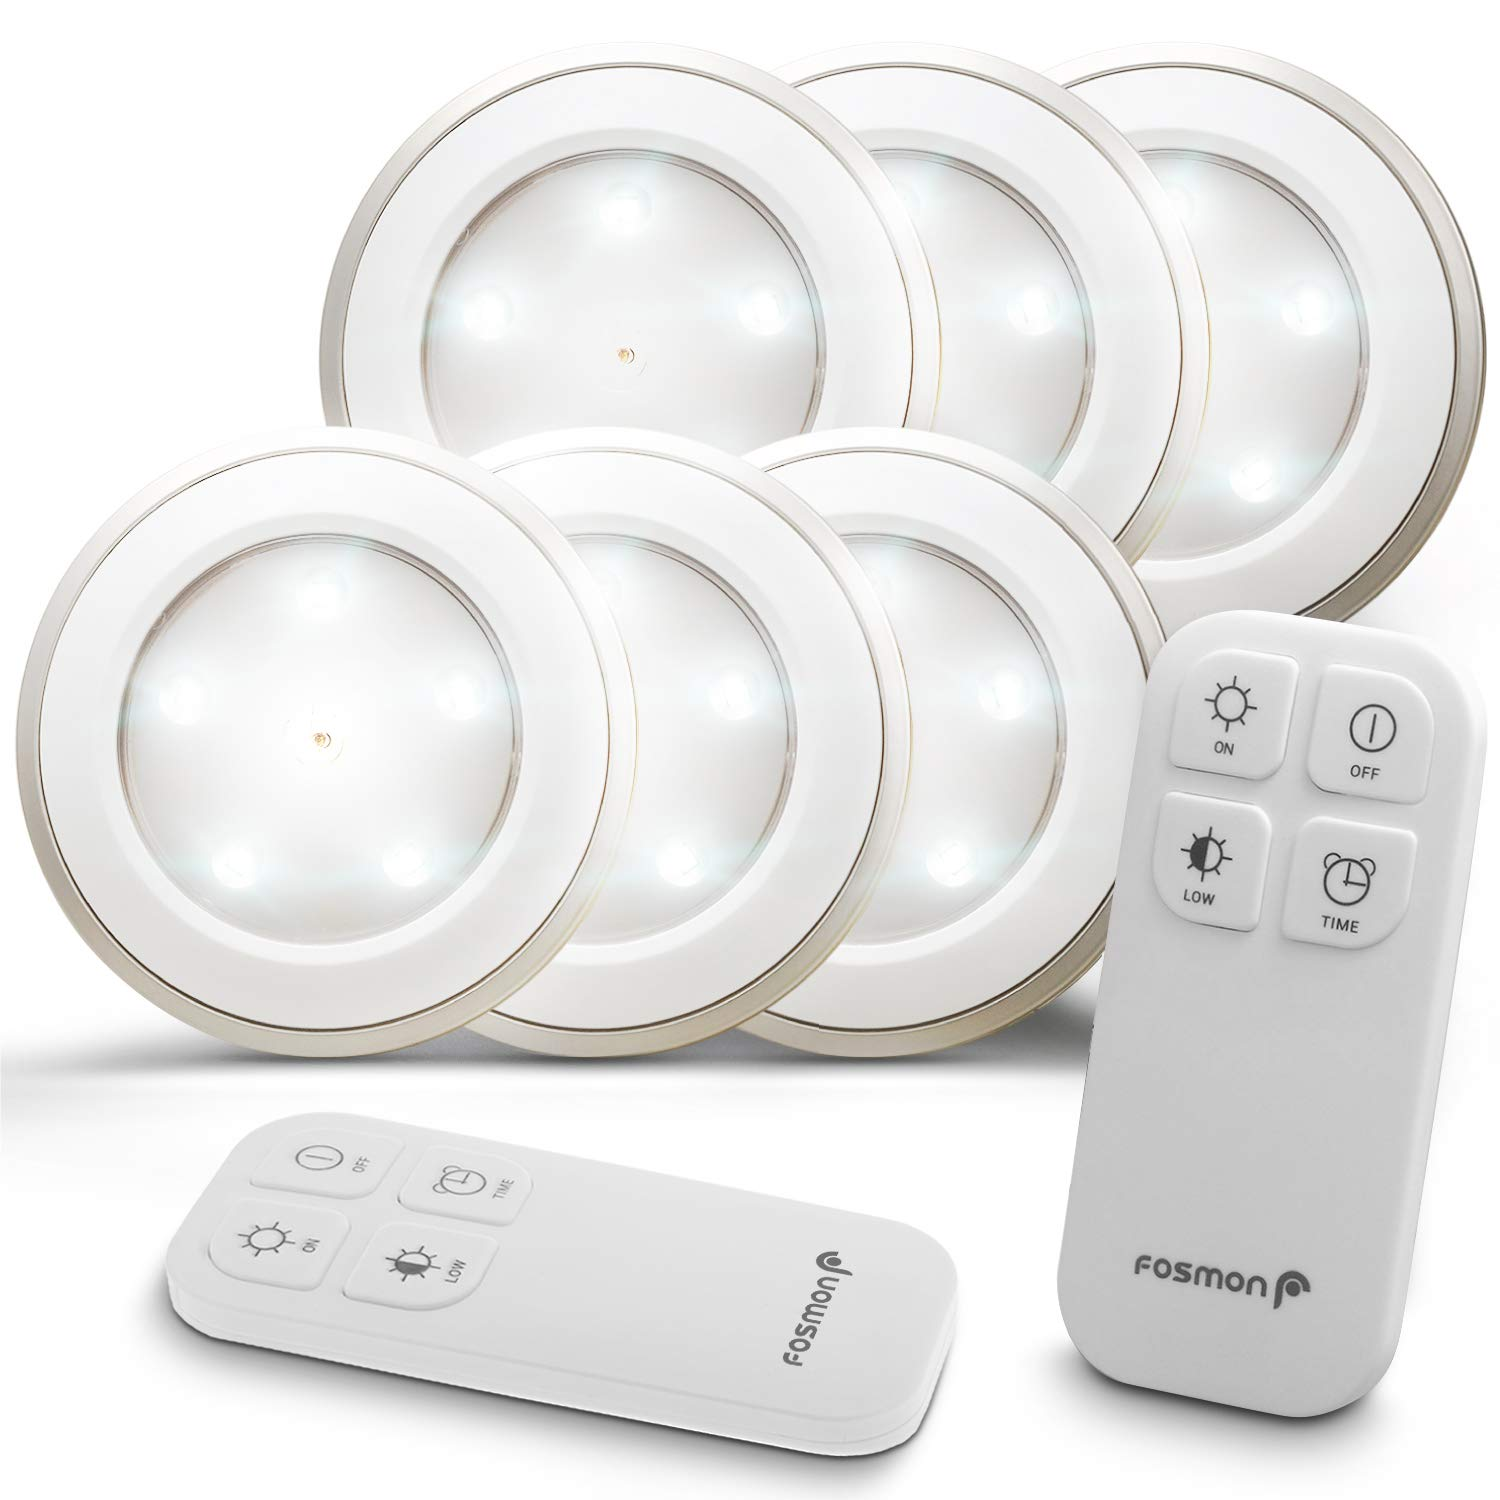 Fosmon Wireless LED Puck Light 6 Pack with Remote Control, Under Cabinet Lighting [5 Daylight White LED, Wide Floodlight Tap Style, 30-Minute Timer, Battery Operated] for Kitchen Closet Pantry Counter